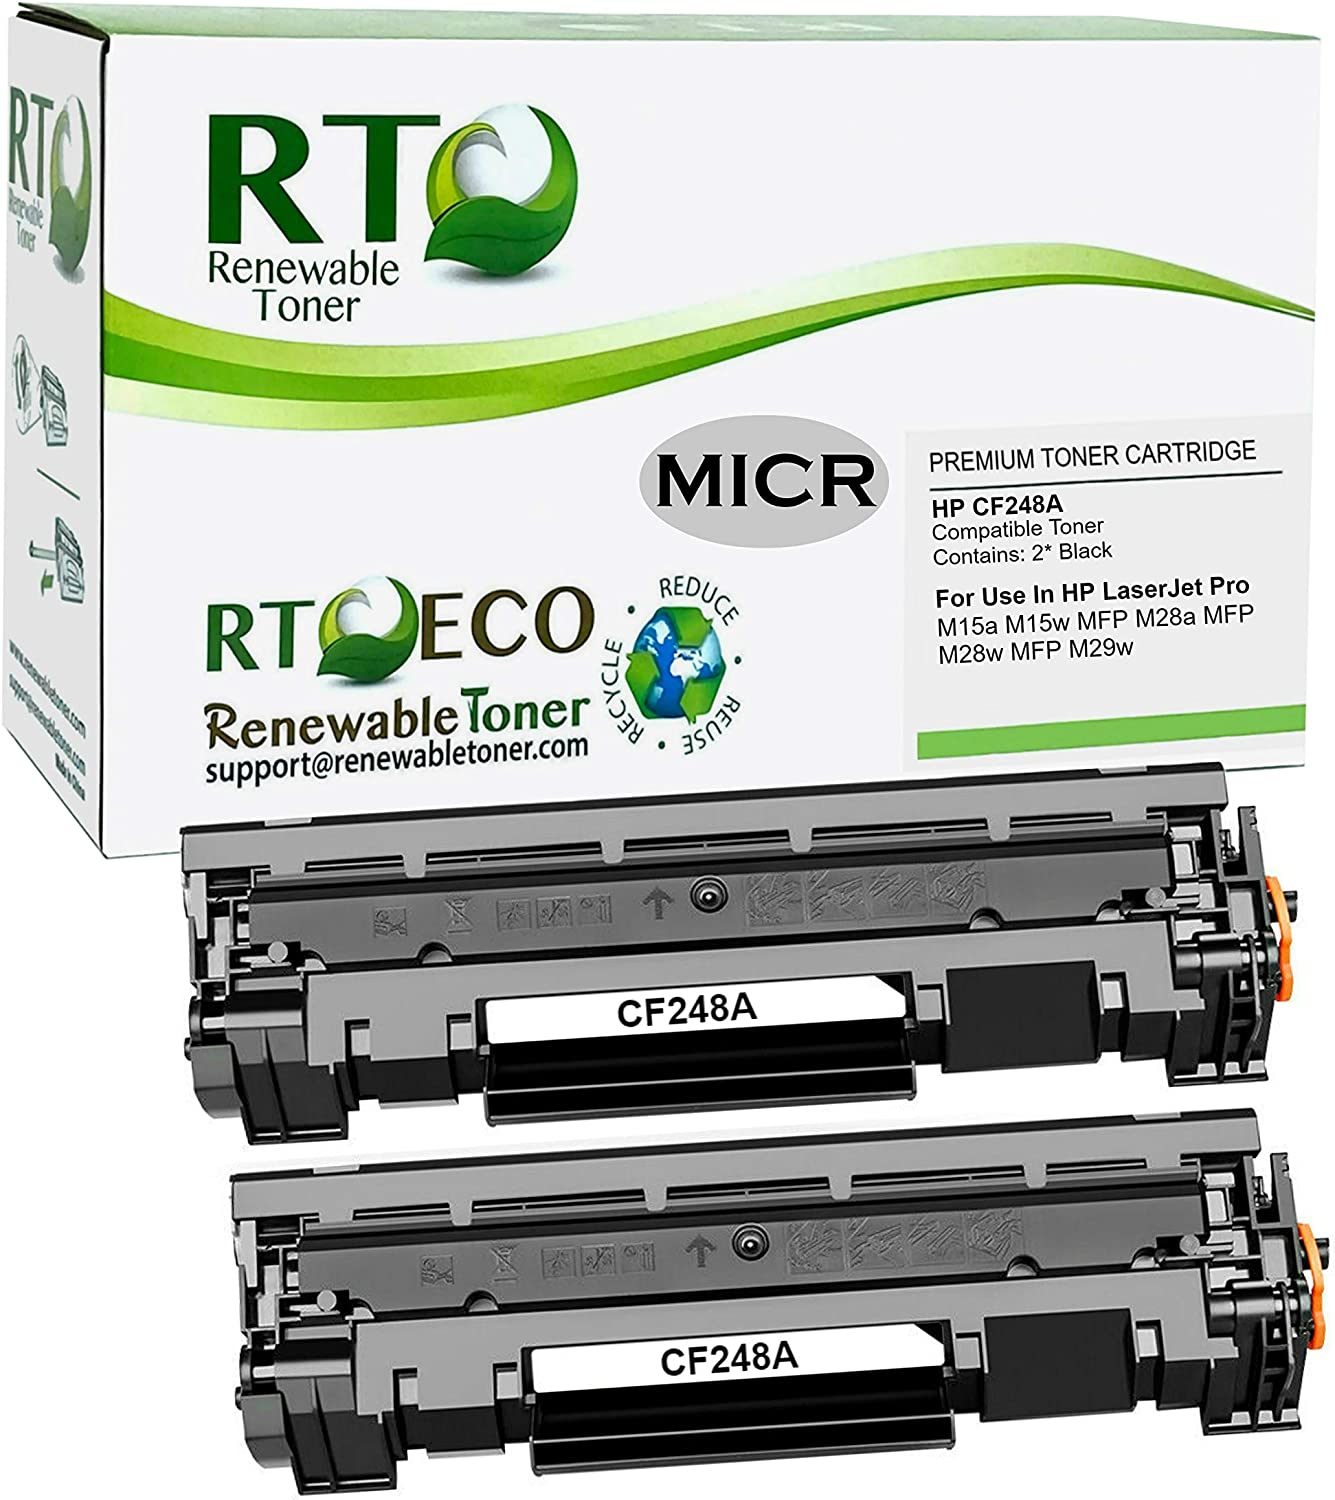 Renewable Toner Compatible MICR Toner Cartridge Replacement for HP CF248A 48A Laserjet M15 M16 M28 M29 (2 Pack)